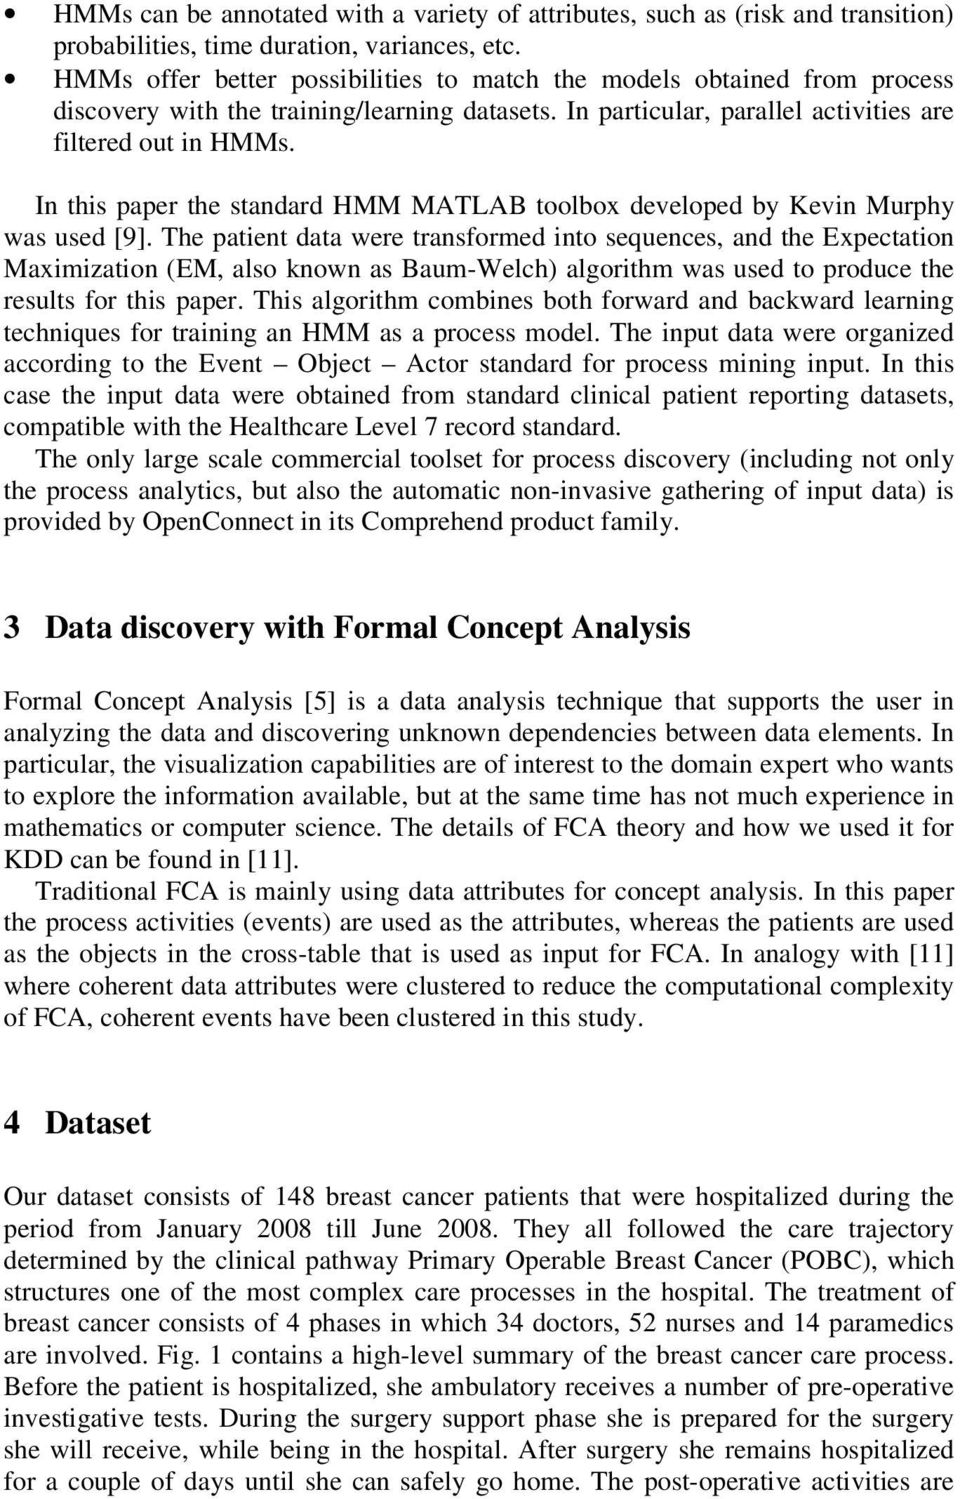 In this paper the standard HMM MATLAB toolbox developed by Kevin Murphy was used [9].